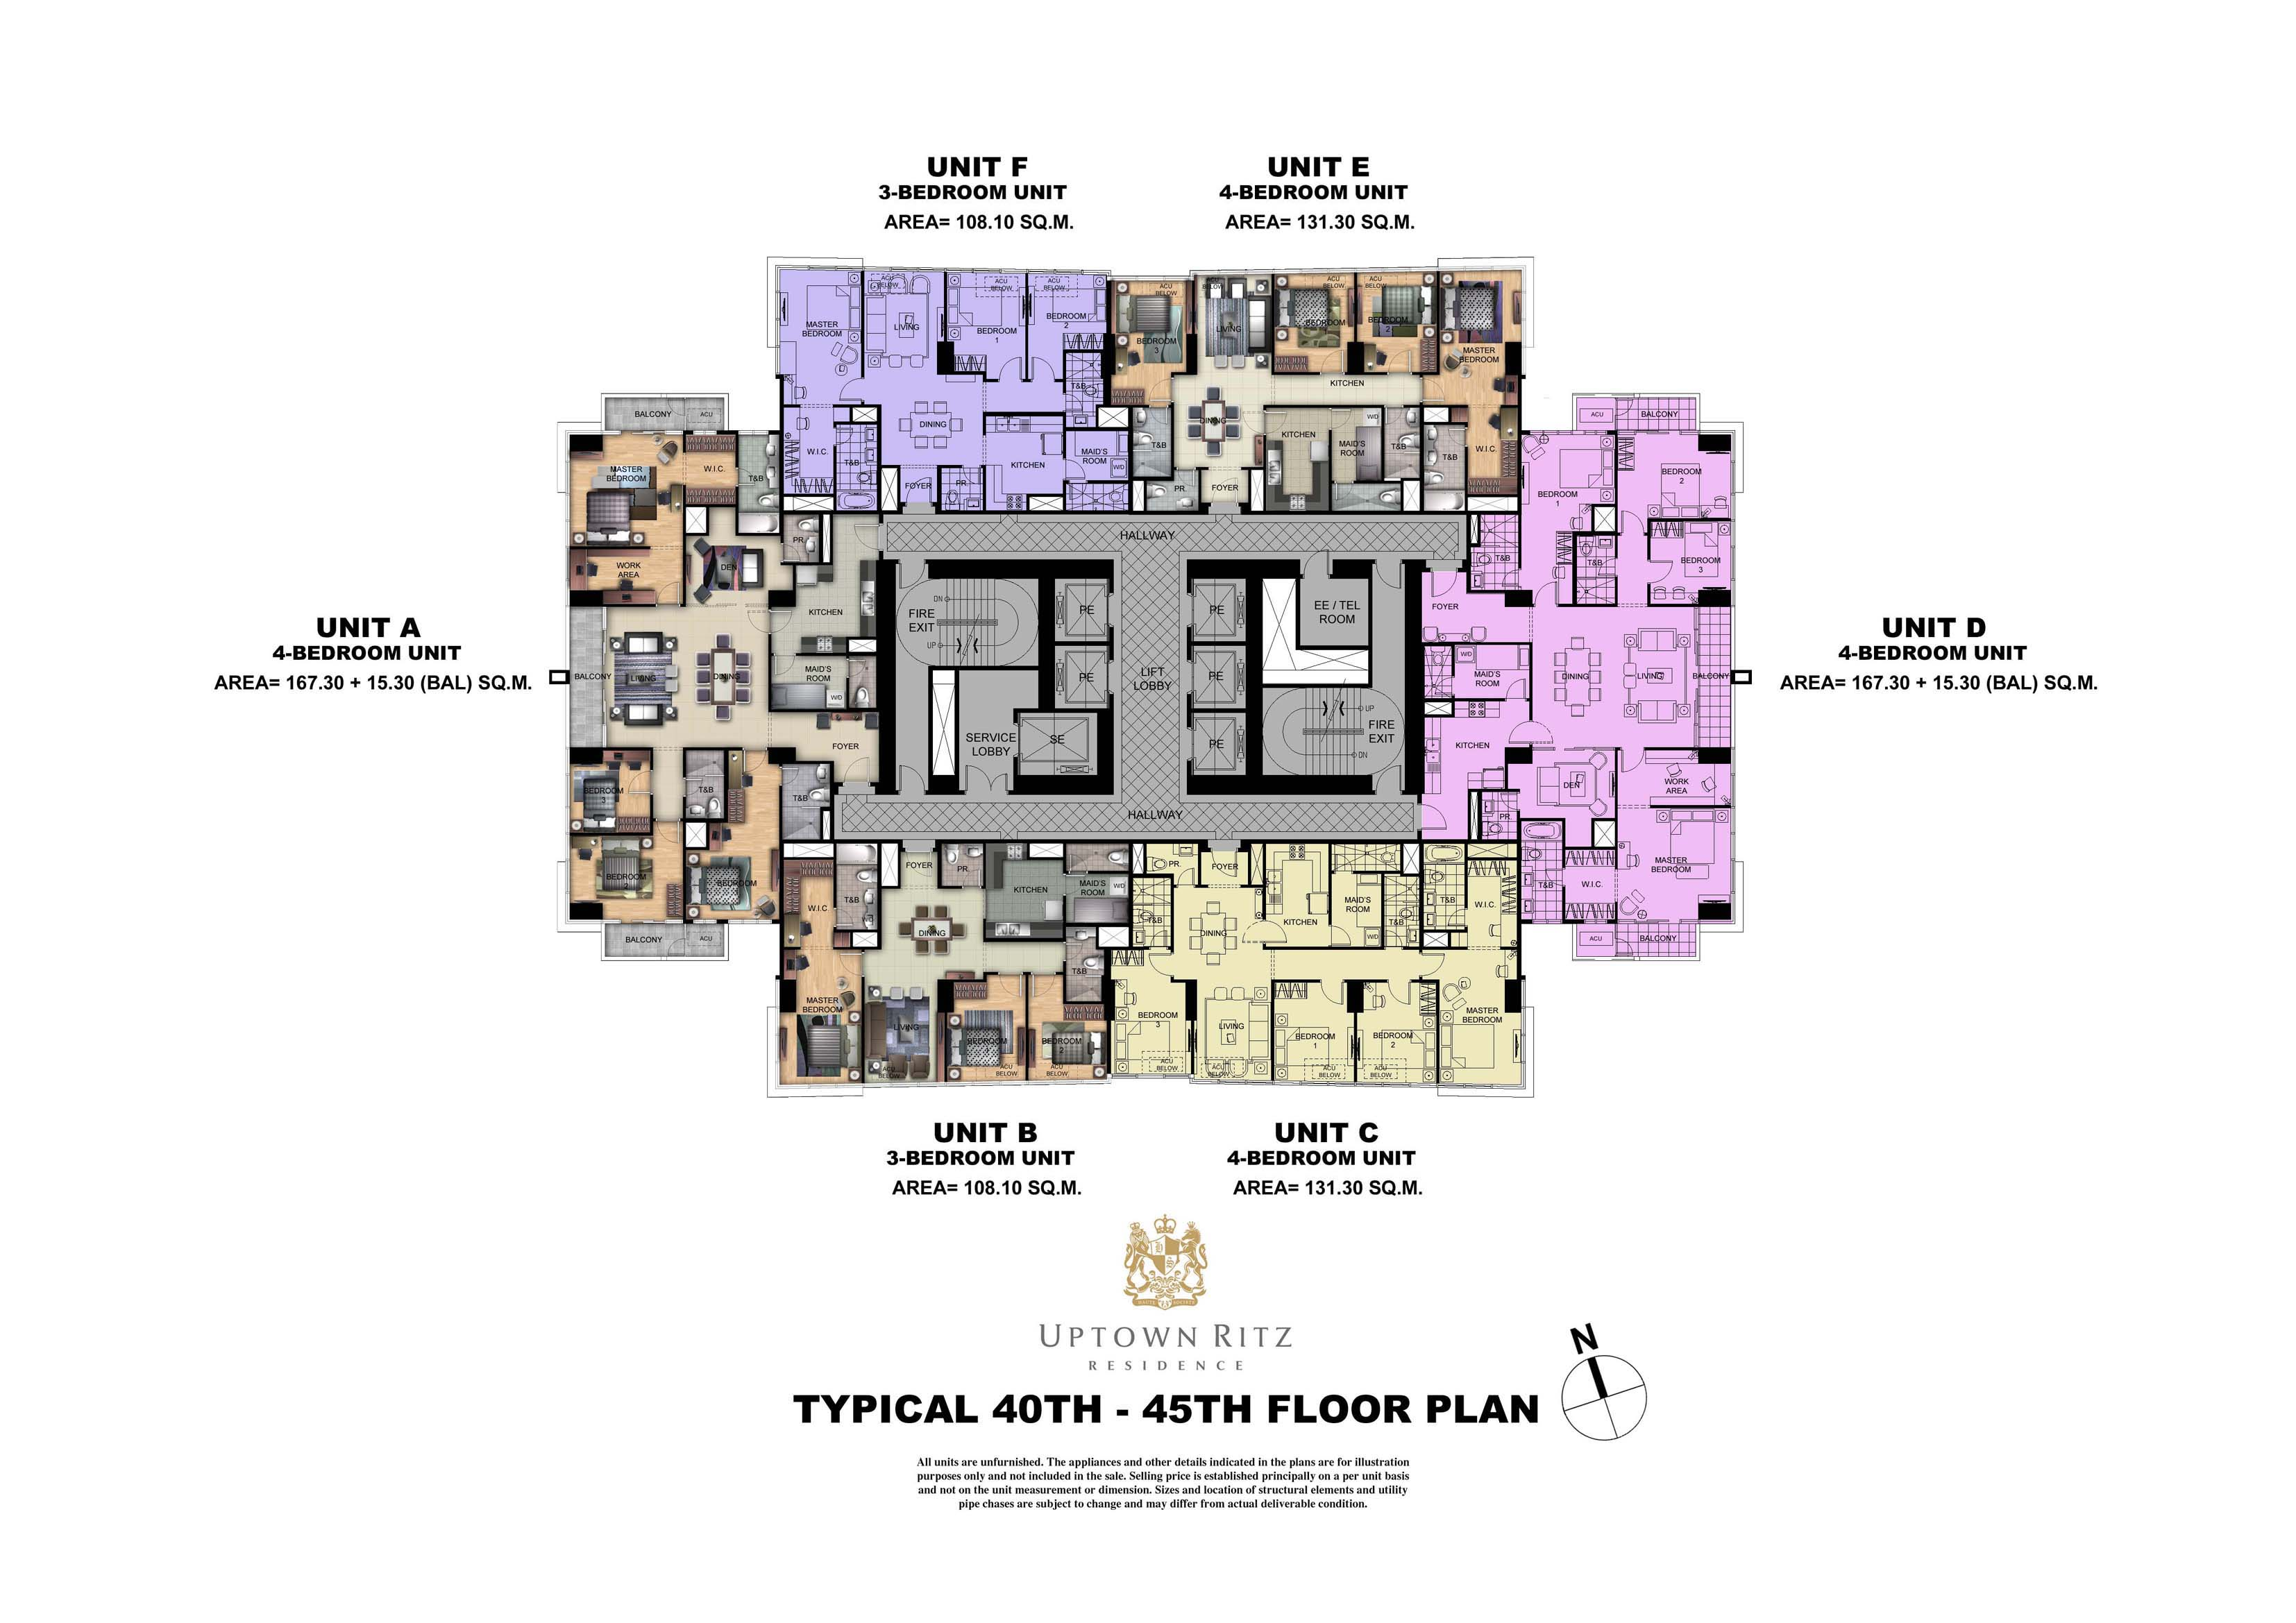 Uptown ritz penthouse floor plan megaworld condominiums - Lay outs penthouse ...